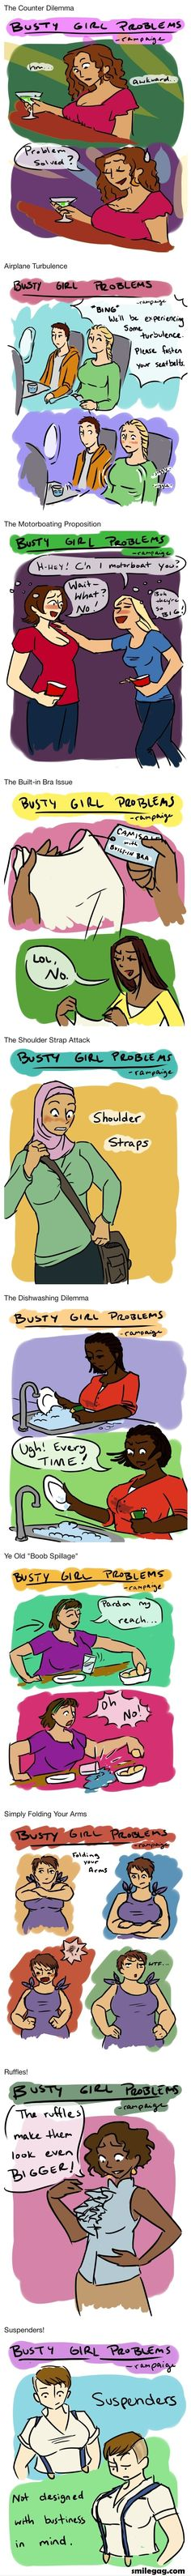 Busty Girls problem... I feel pity for them:/  visit the site for more funny pictures.